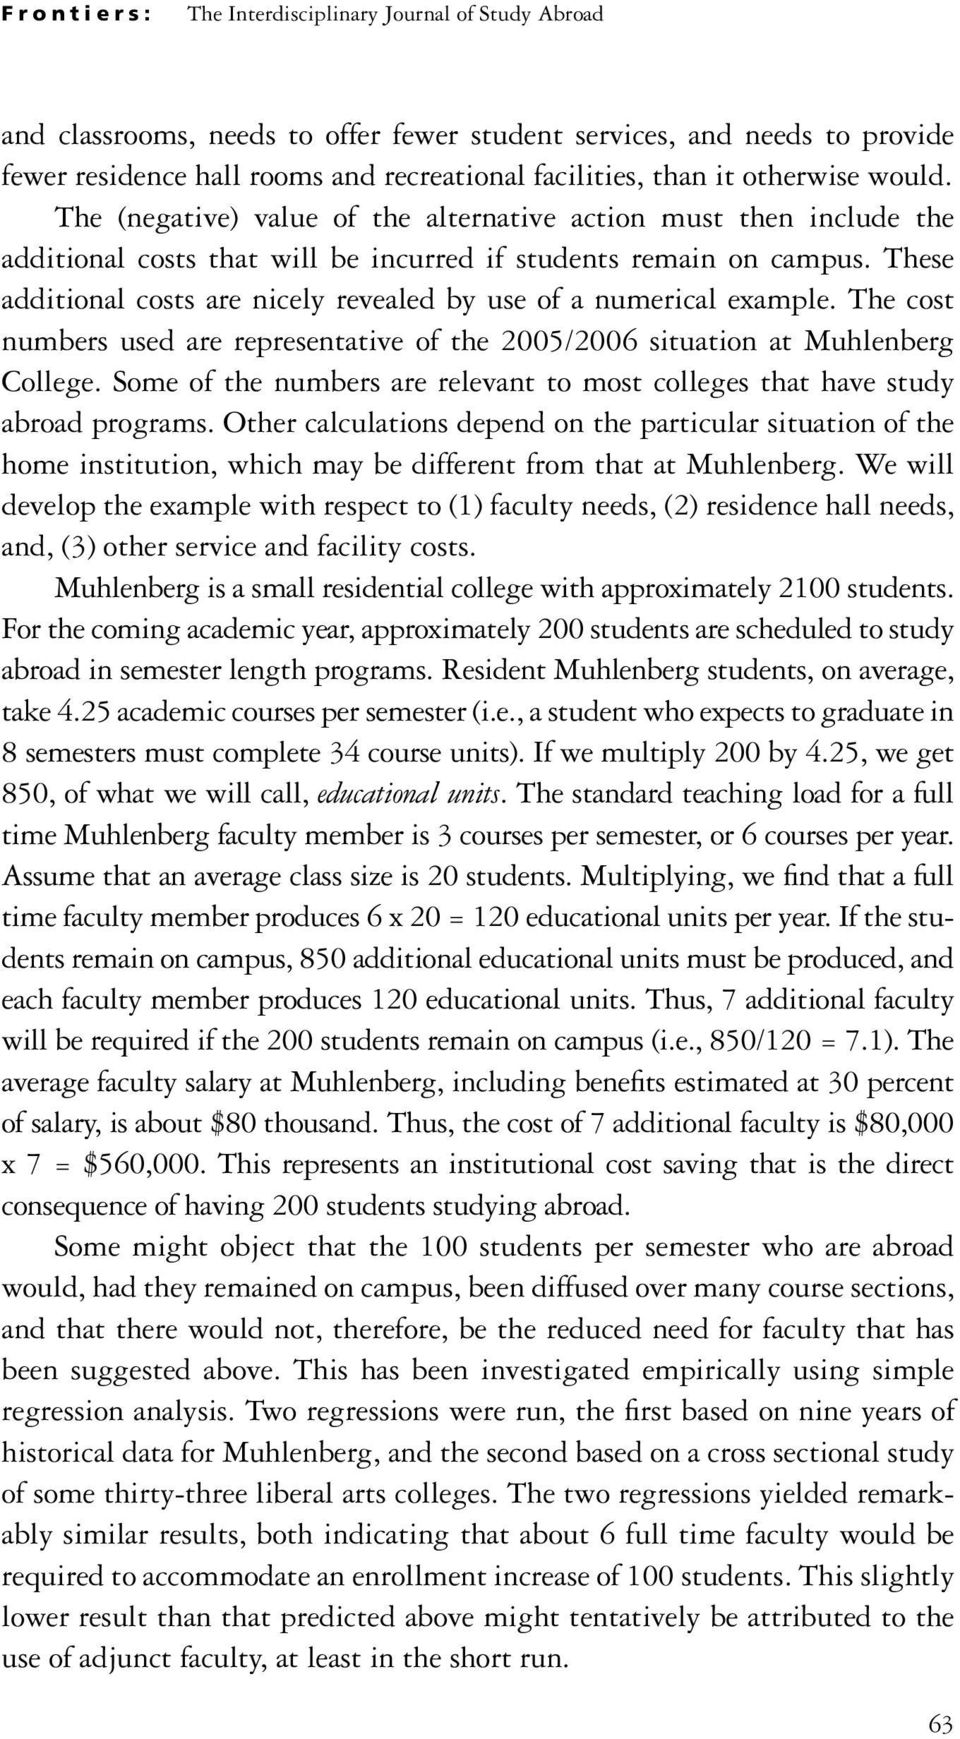 These additional costs are nicely revealed by use of a numerical example. The cost numbers used are representative of the 2005/2006 situation at Muhlenberg College.